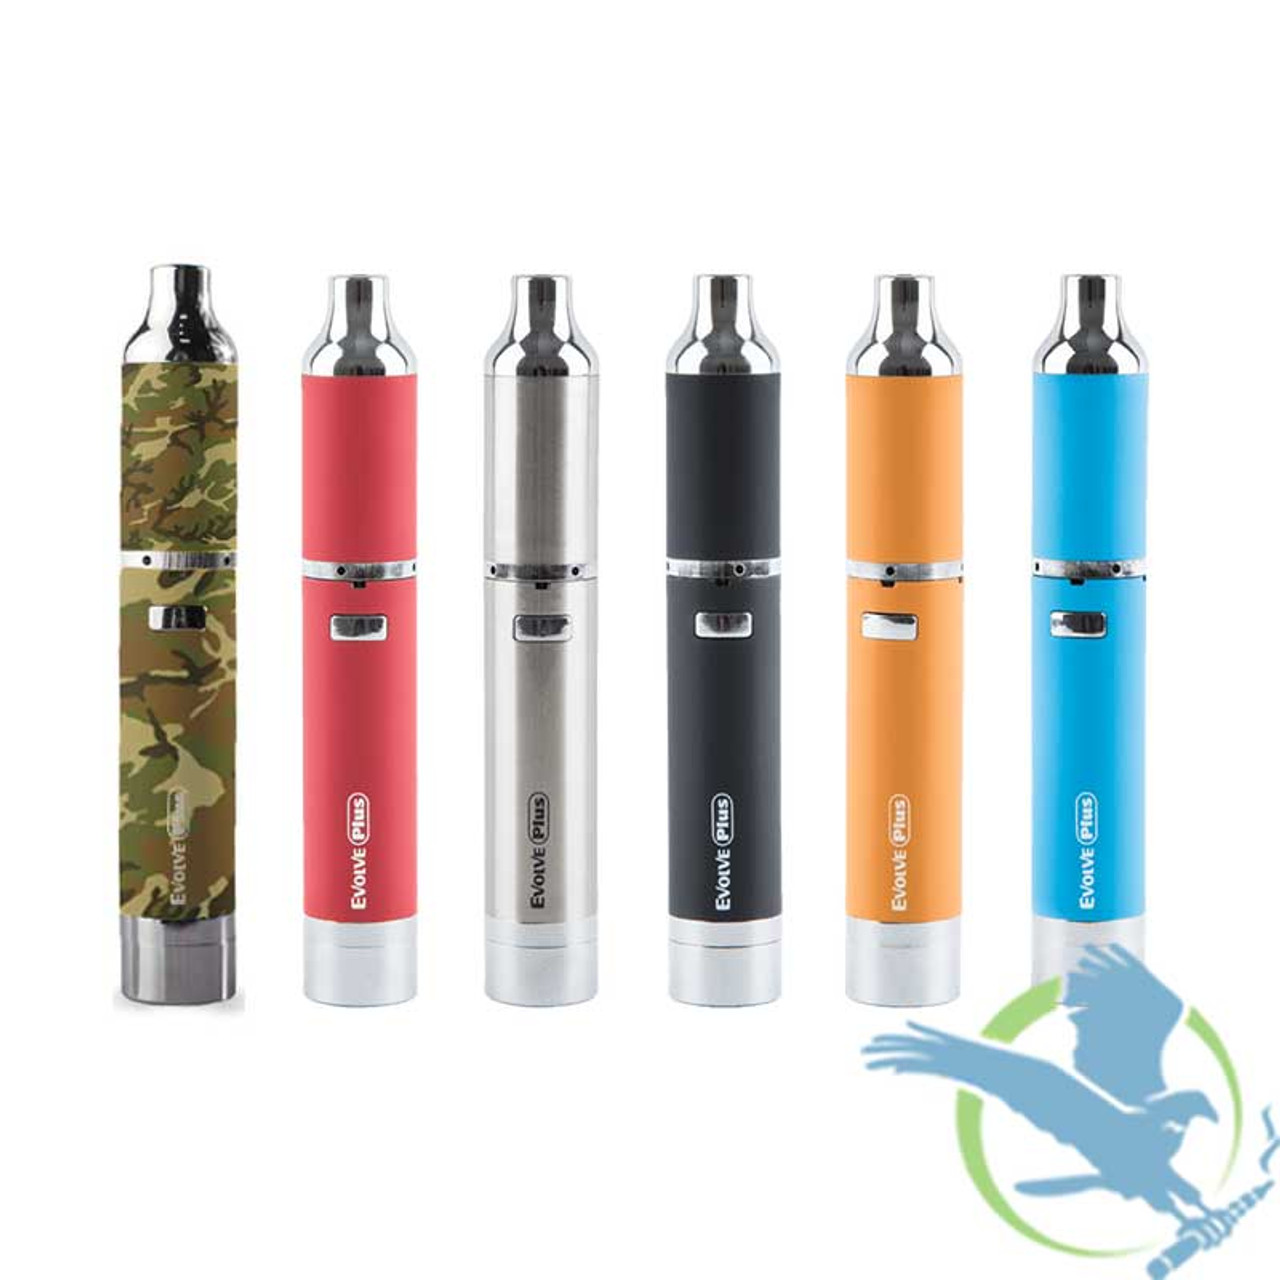 YoCan Evolve Plus 2 in 1 Wax And Dry Herb Vape Kit